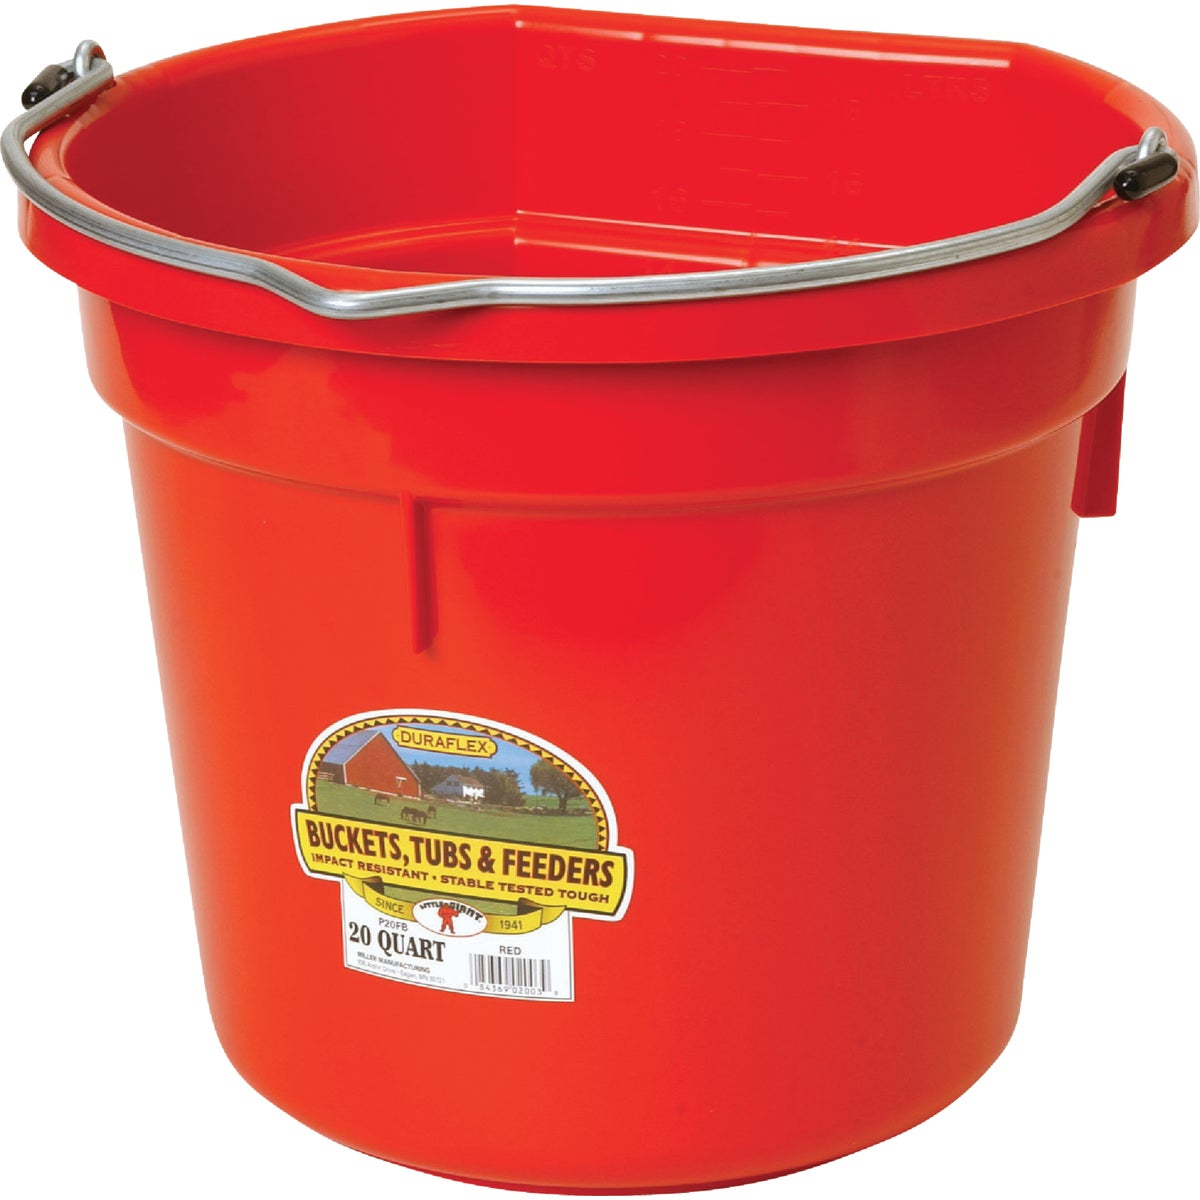 20QT FLAT BACK BUCKET